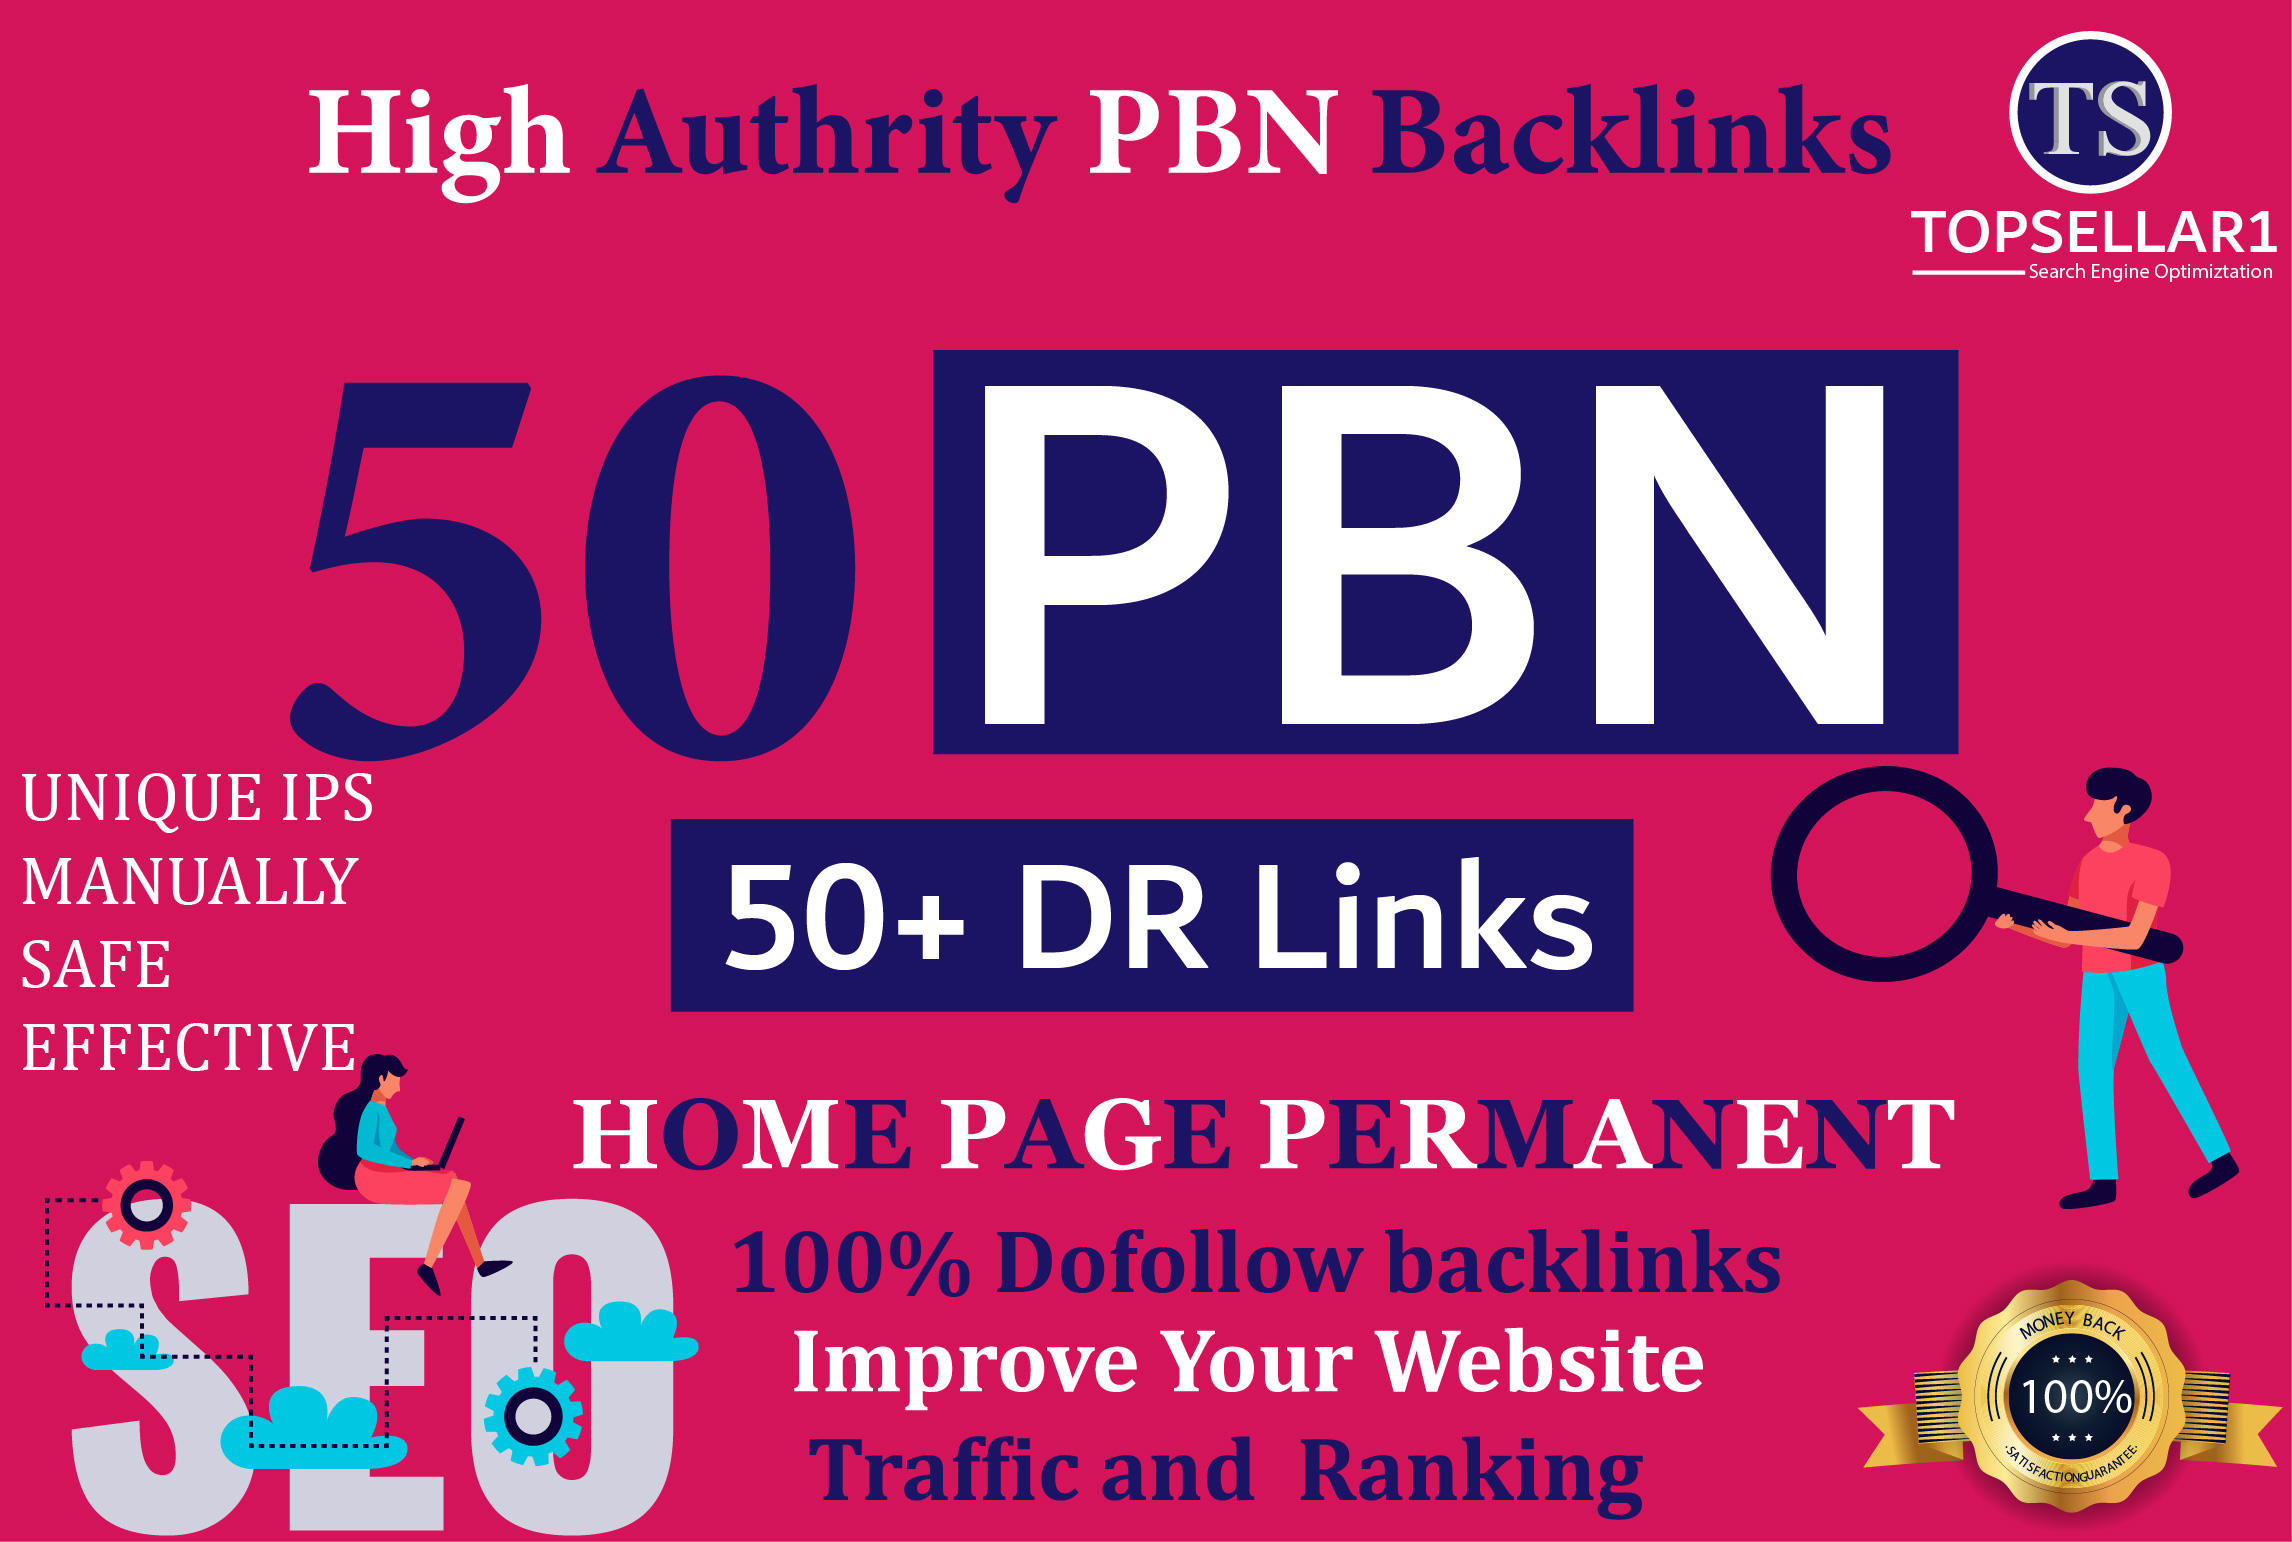 make 50 PBN Backlinks with 50 to 75 DR Dofollow Hompage Links